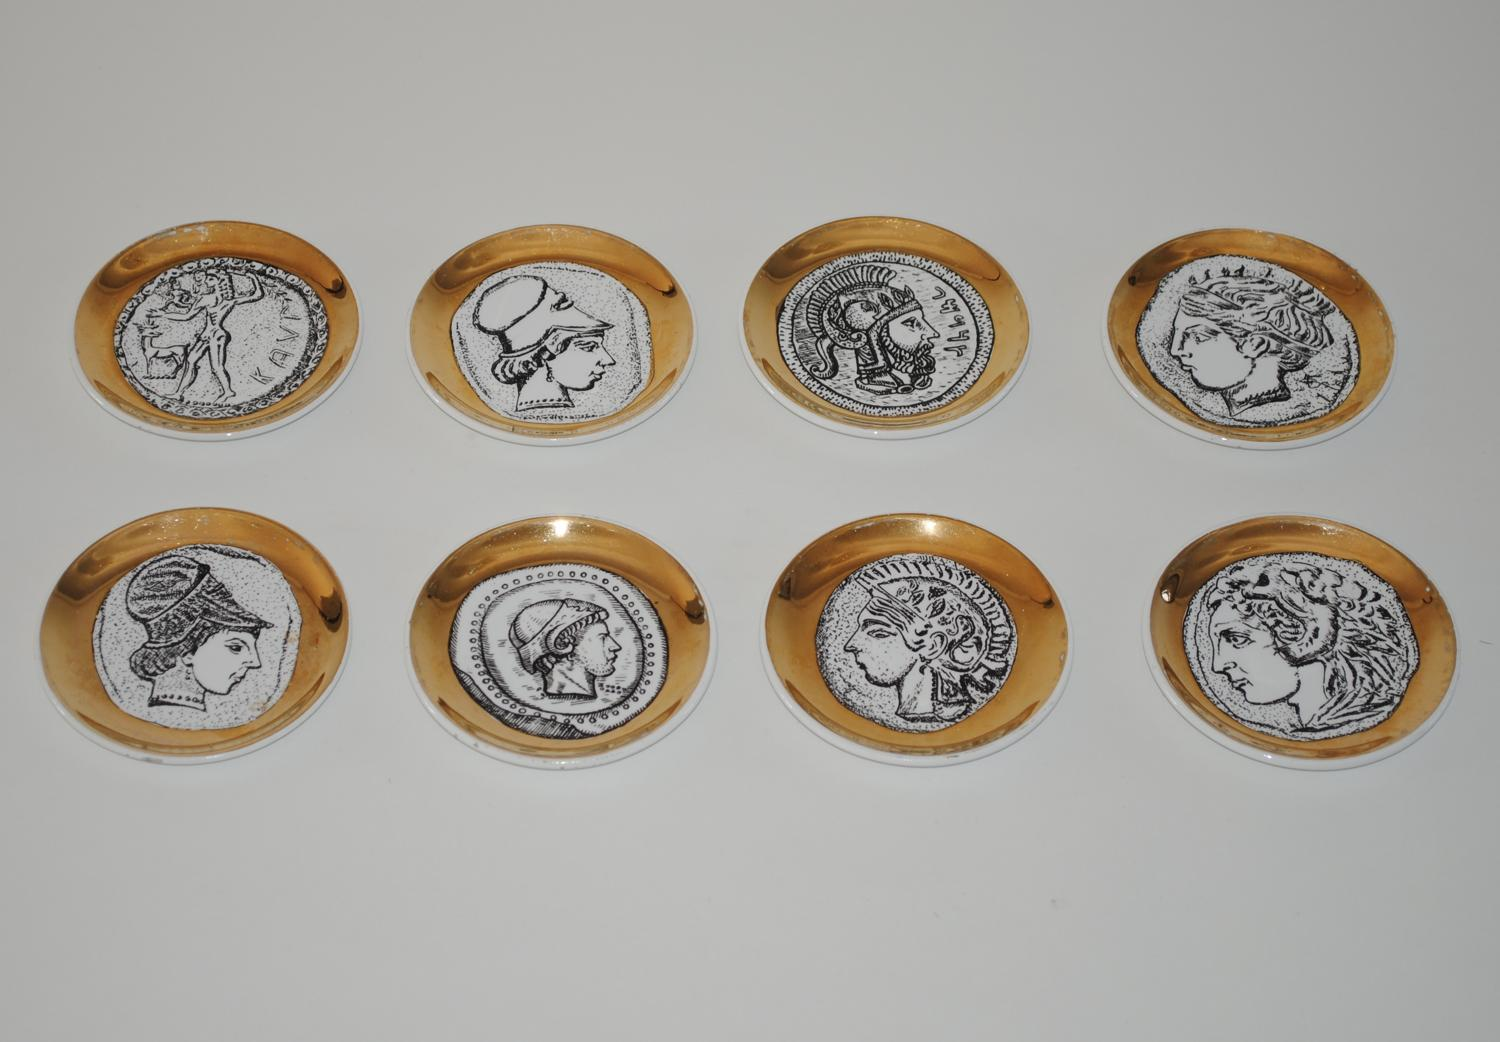 Set of porcelain coasters